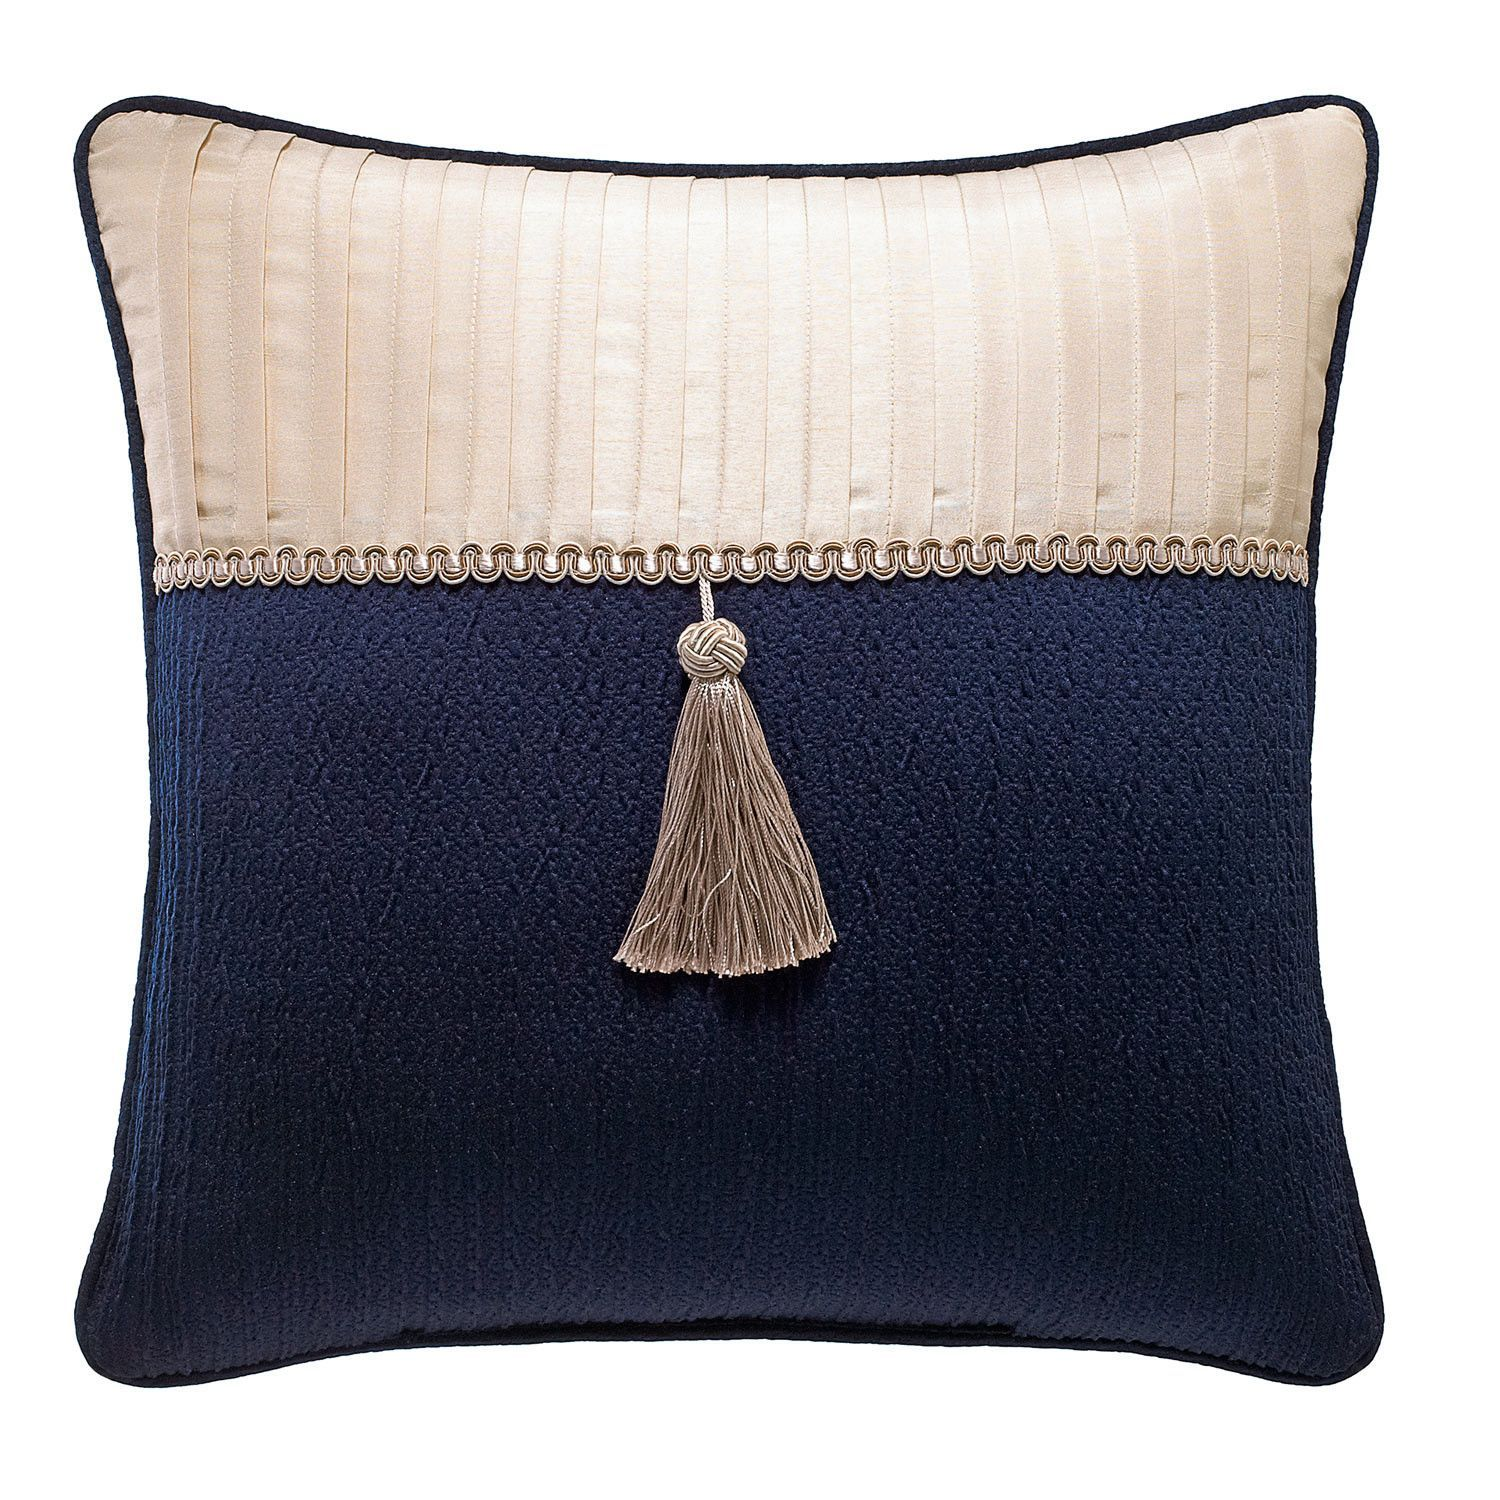 Features Imperial collection Product Type Throw pillow Color